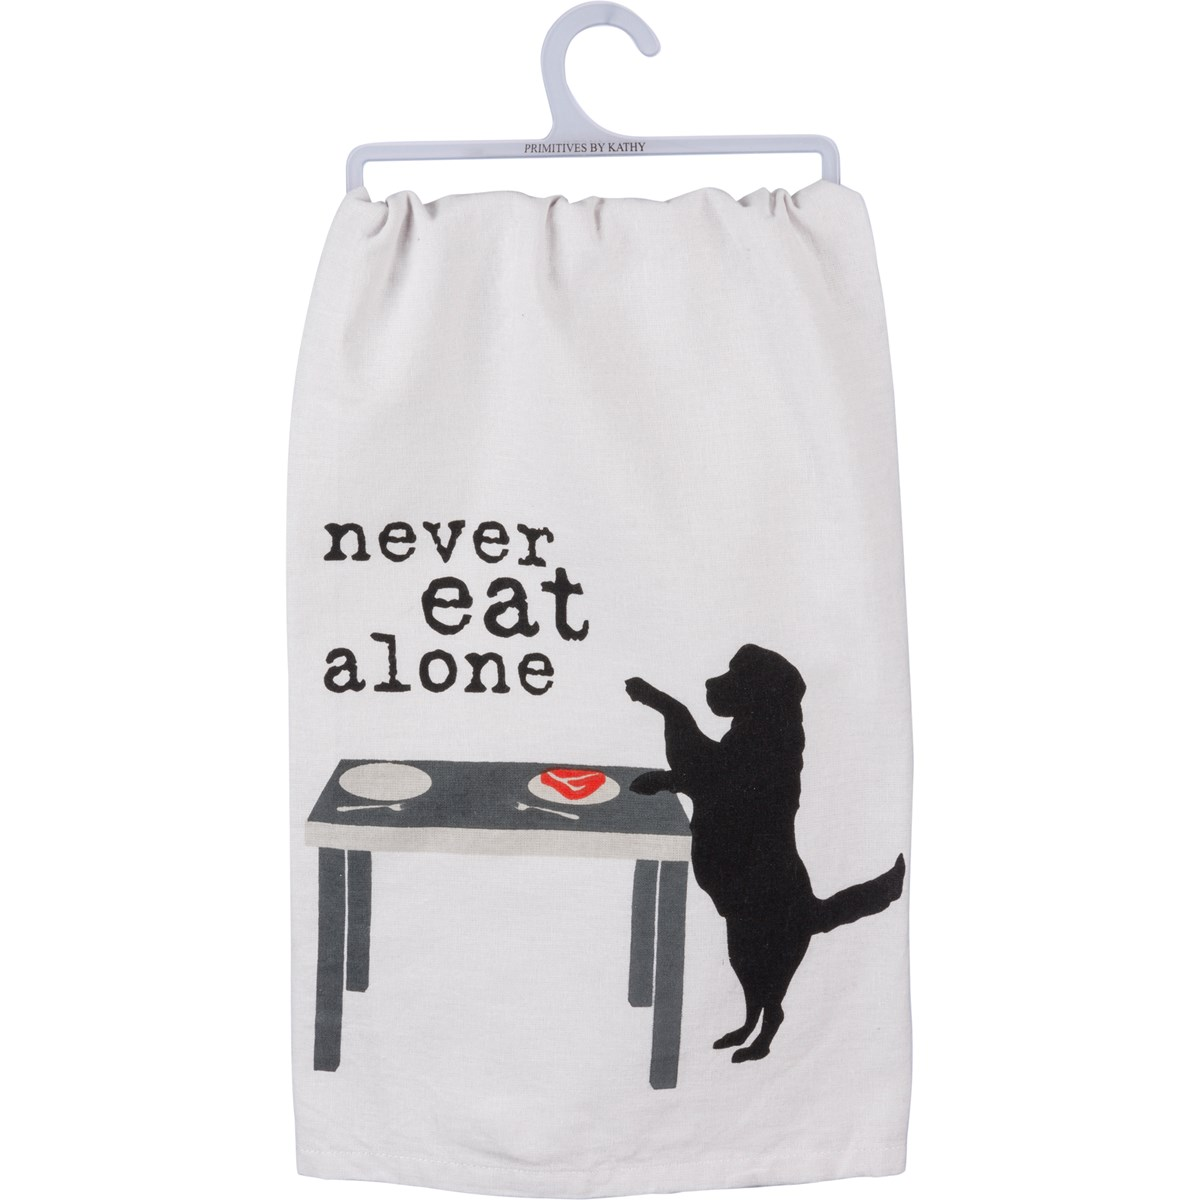 "Dish Towel - Never Eat Alone - 28"" x 28"" - Cotton"